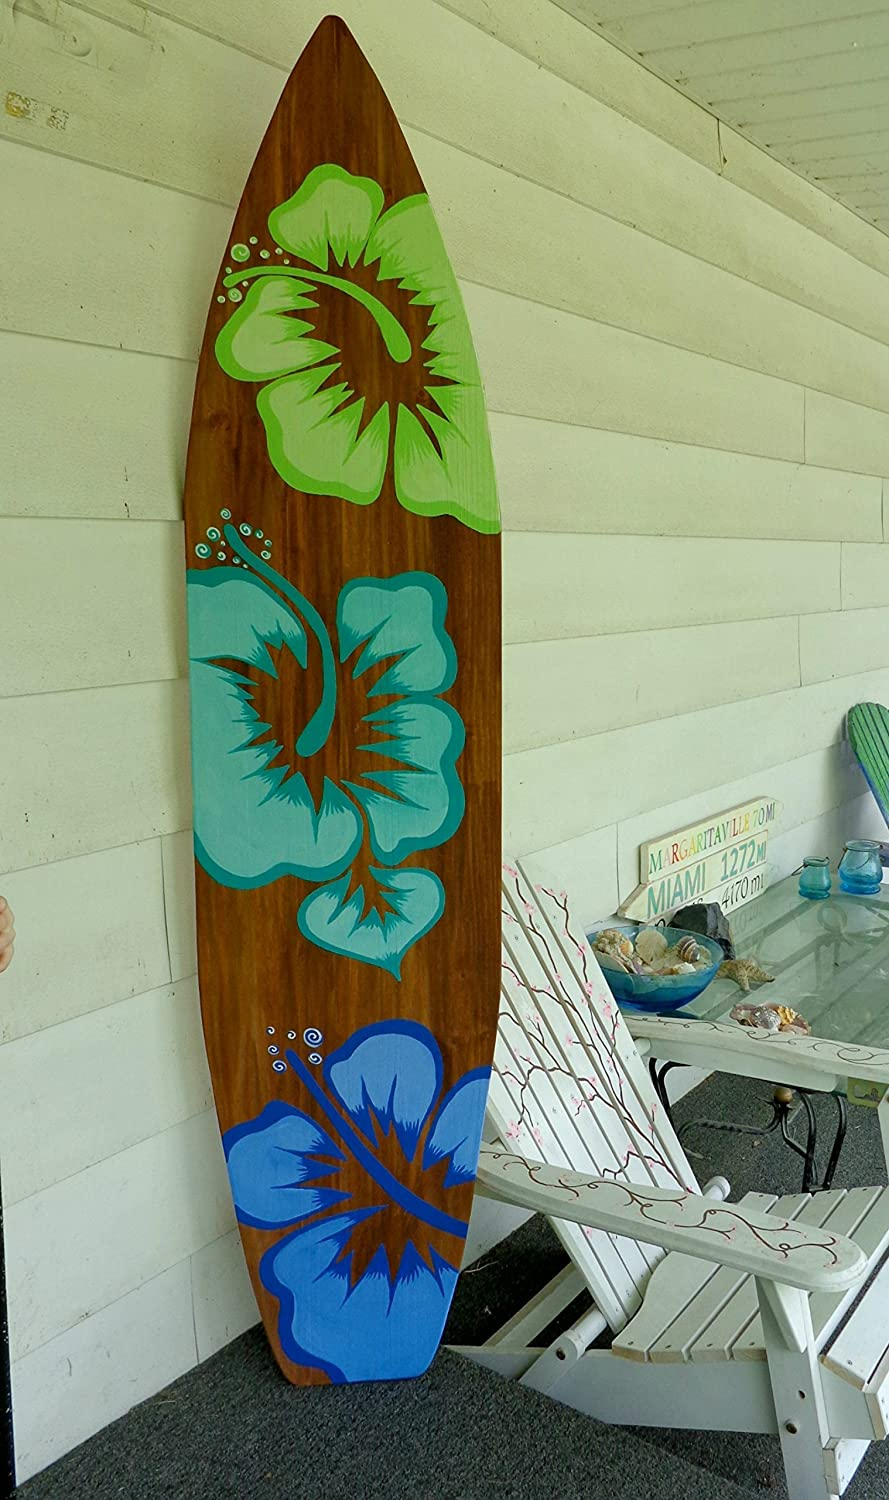 6 Foot Wood Surfboard Wall Art Stained Brown With Large Hibiscus Flowers